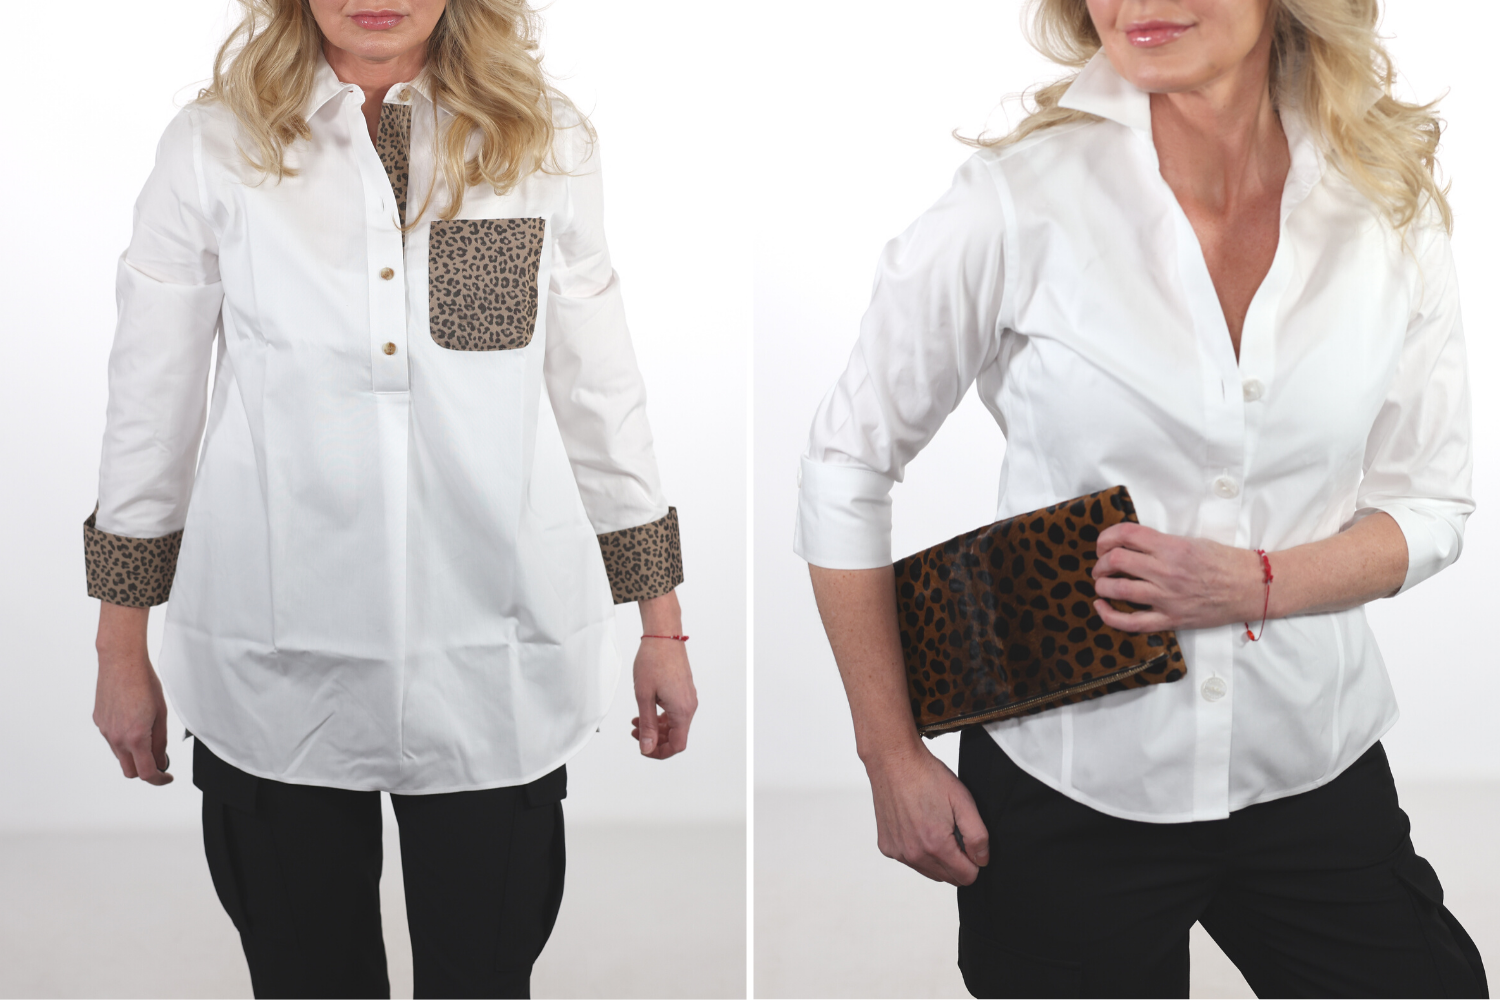 How To Look Younger, Erin Busbee of Busbee in a before and after wearing a white tunic top with leopard print details on the pocket and cuffs on the left and a white button down and leaopard clutch by Clare V on the right